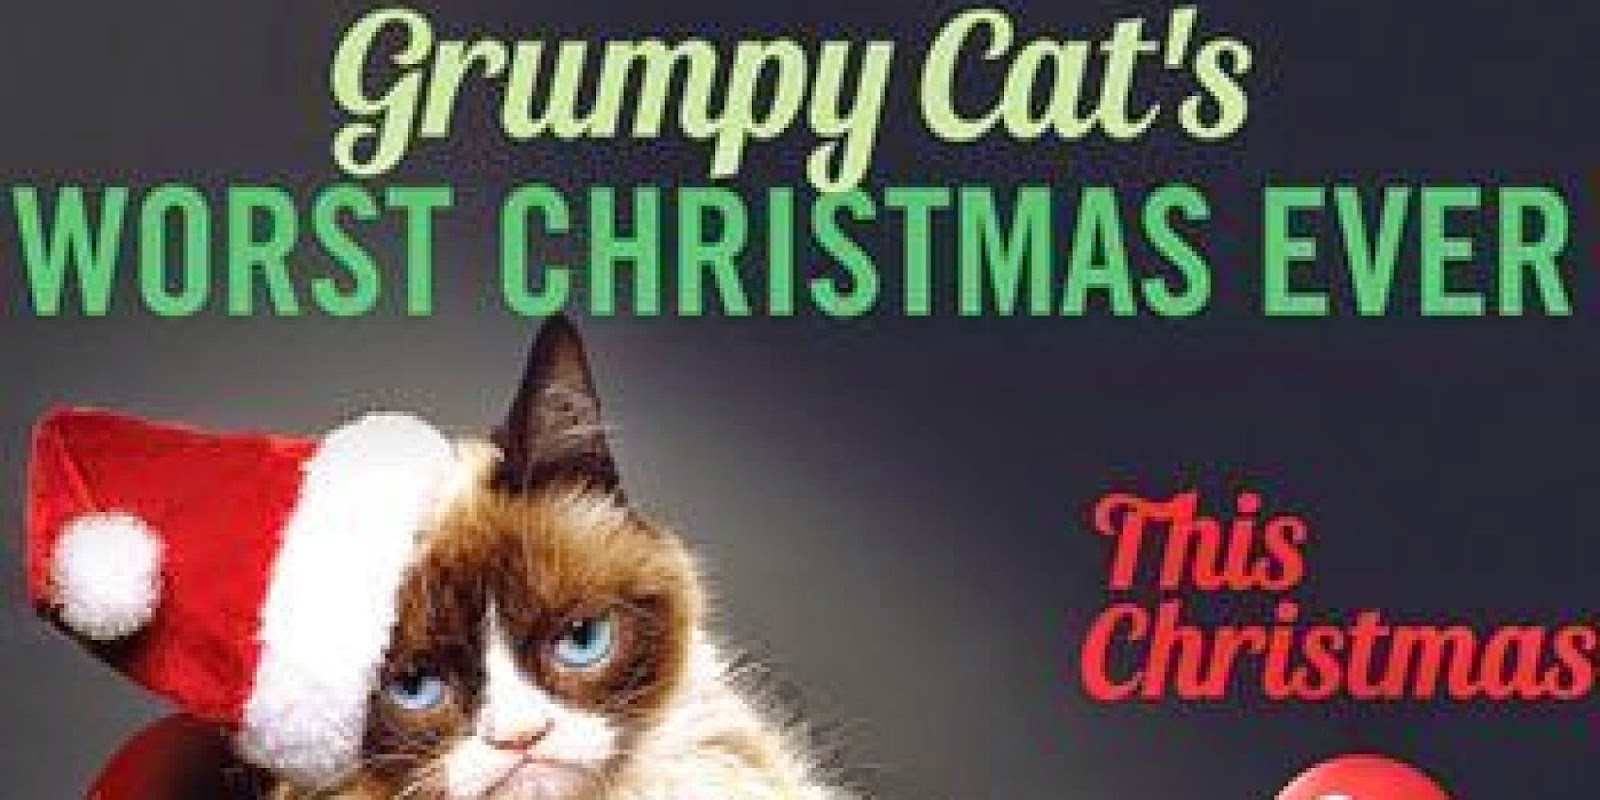 Grumpy cat movie trailer teaser trailer check out the official trailer of grumpy cat the upcoming comedy tv movie directed by tim hill and jeff morris and starring aubrey plaza and megan thecheapjerseys